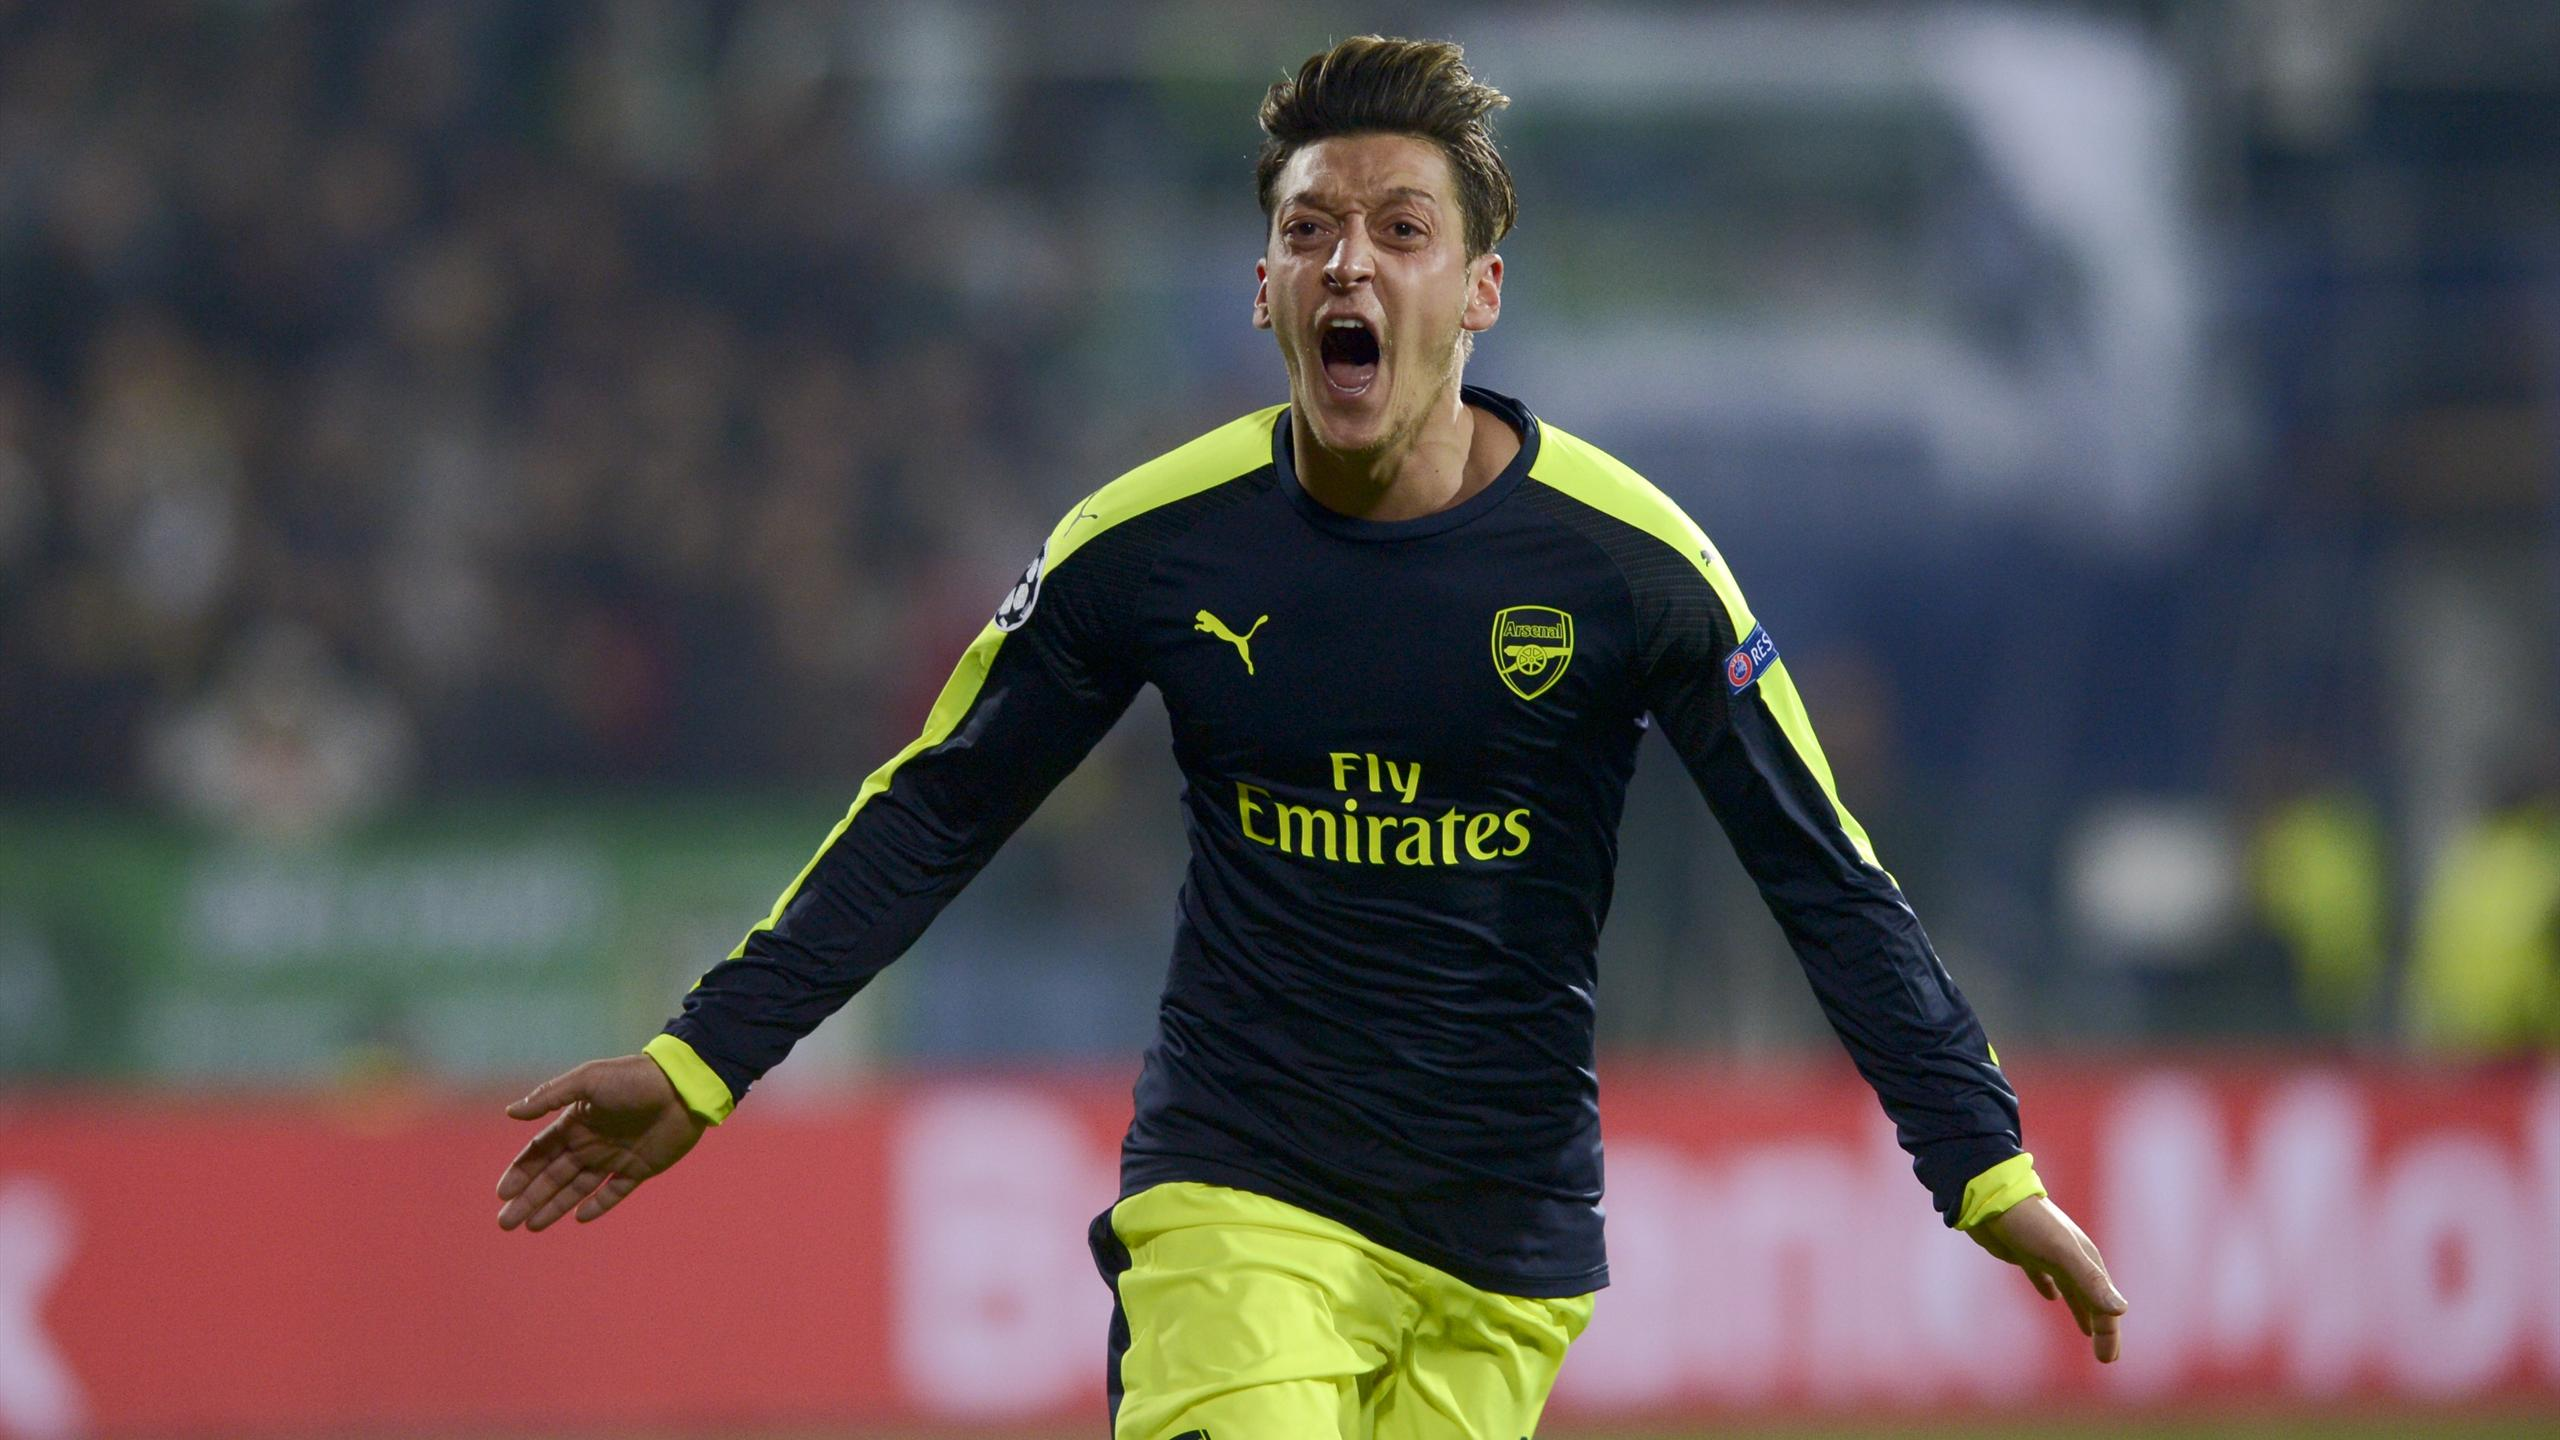 Arsenal's midfielder Mesut Özil celebrates after scoring a goal during the UEFA Champions League Group A football match between PFC Ludogorets and Arsenal, on November 1, 2016